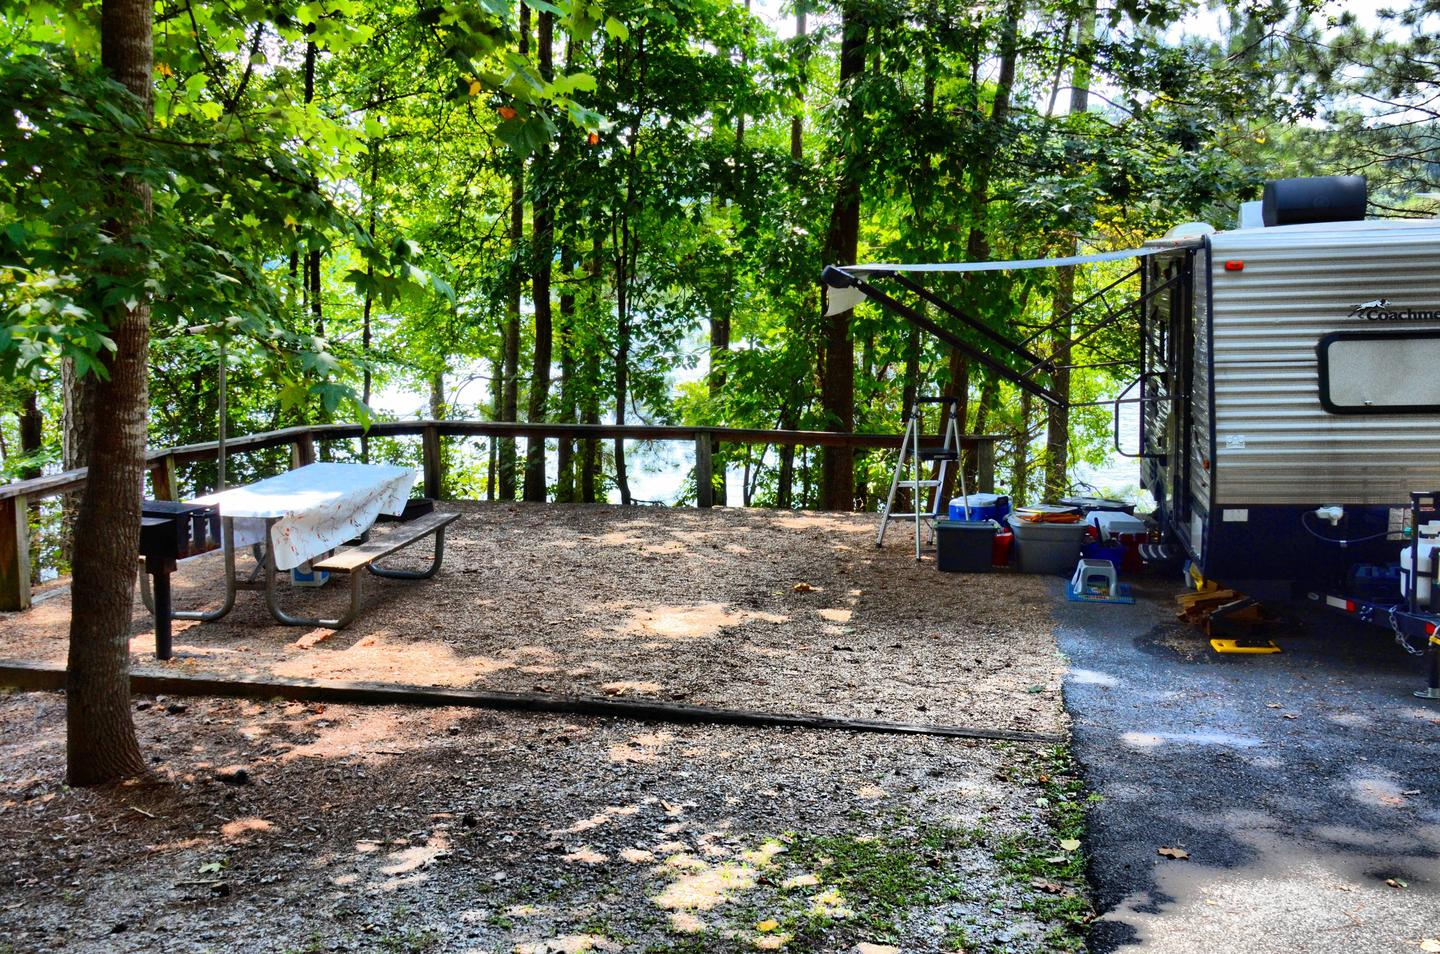 Awning-side clearance, campsite view.McKinney Campground, campsite 132.